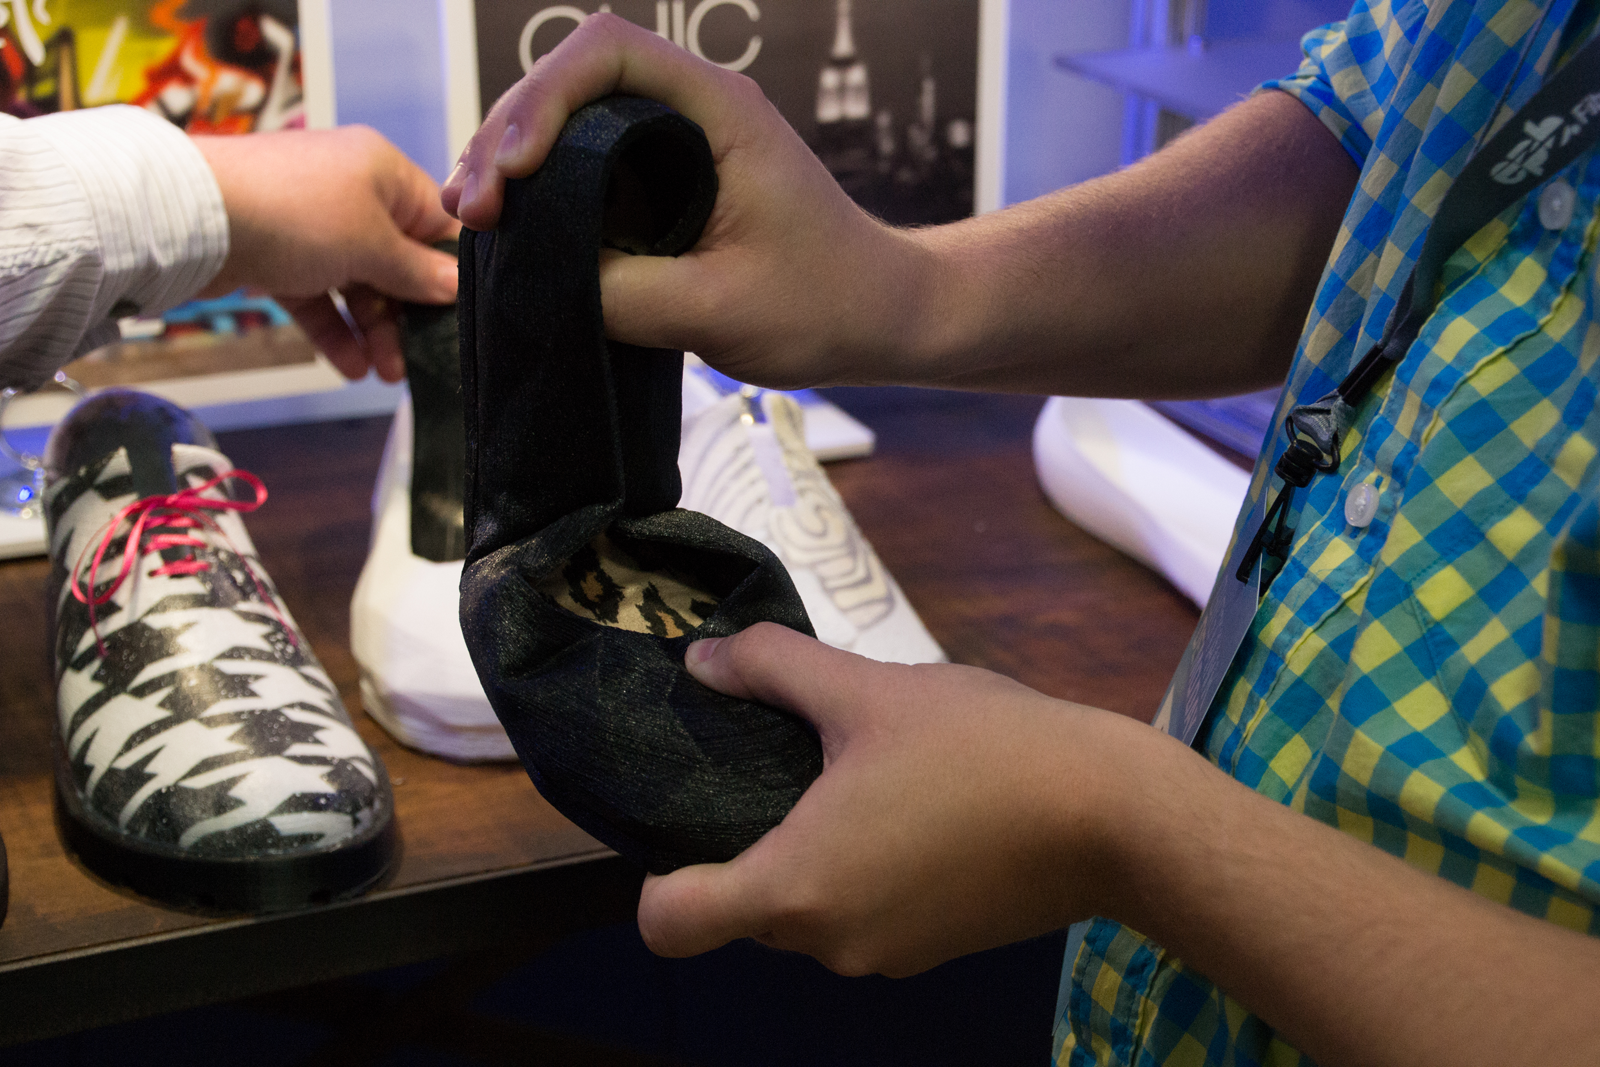 Feetz 3D printed shoe demonstrating flexibility